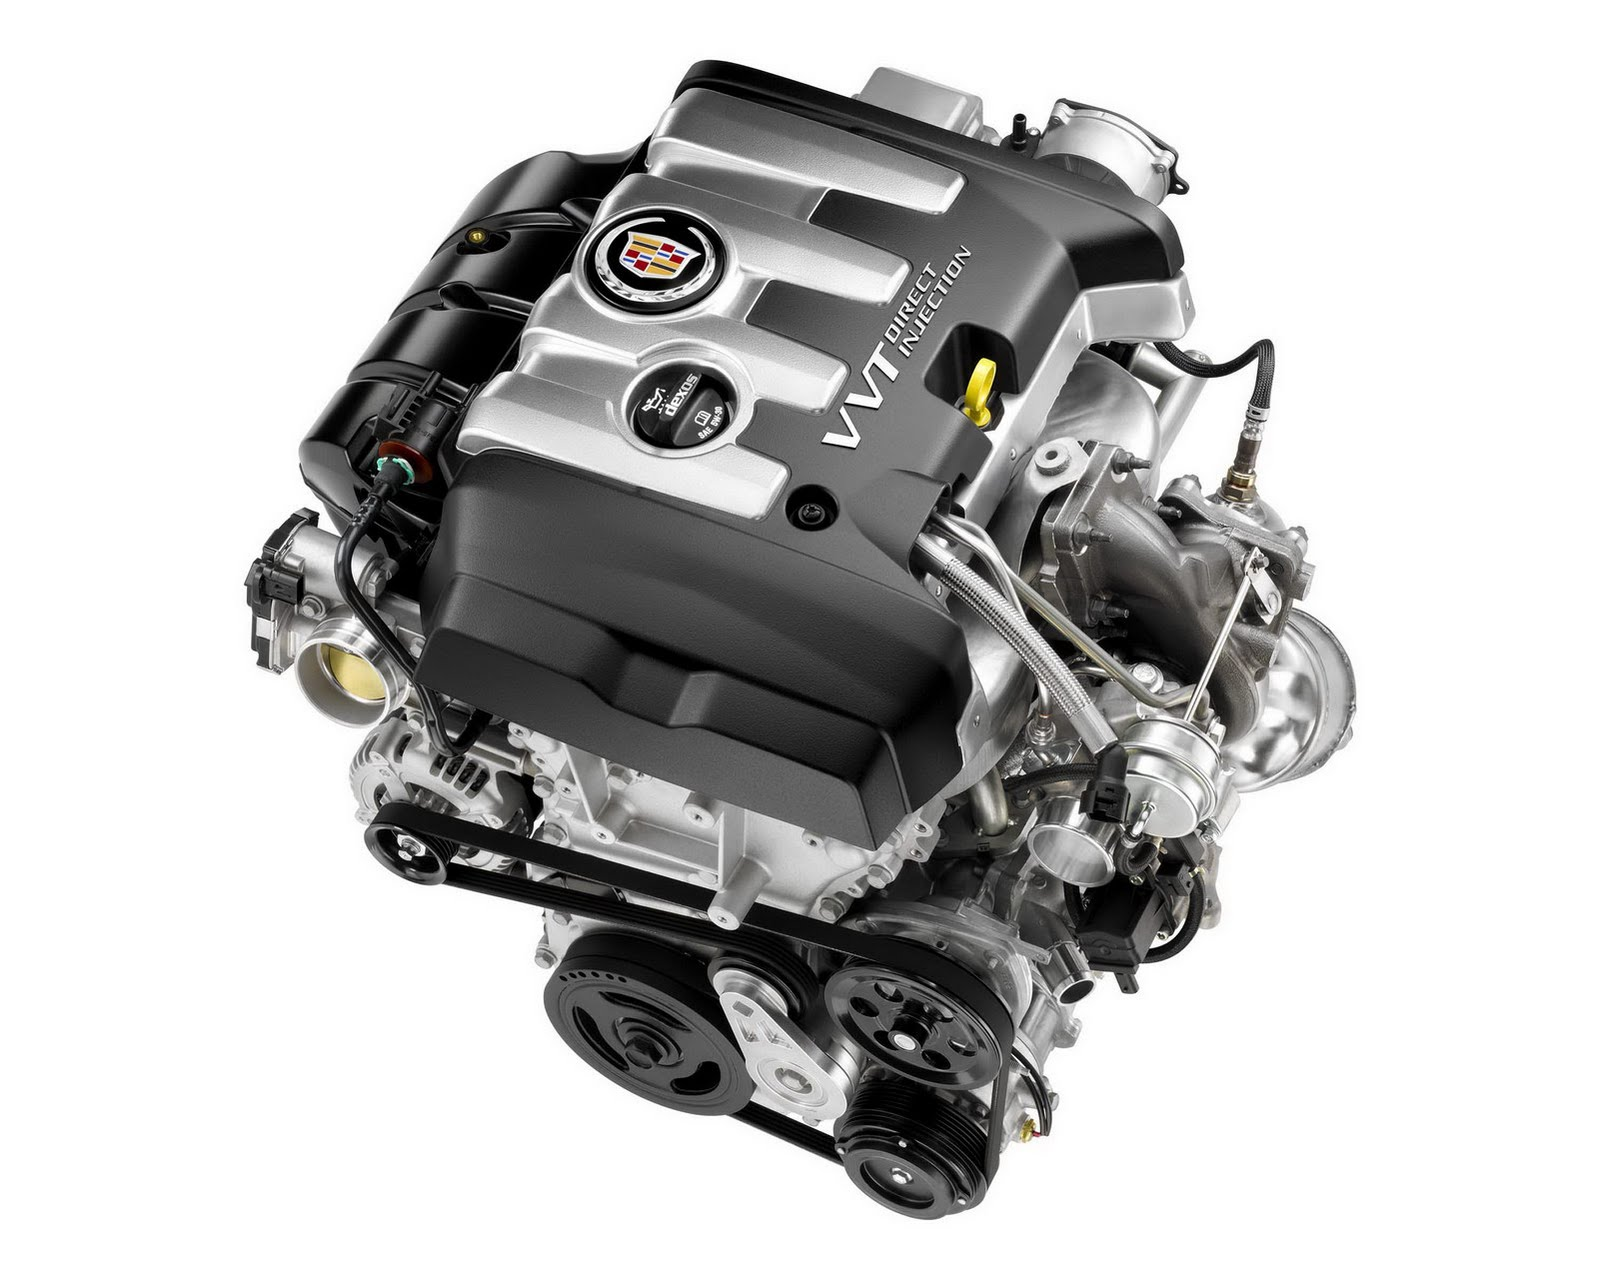 2013 Cadillac Ats Engines 270 Hp 2 0l Turbo 2 5l And 3